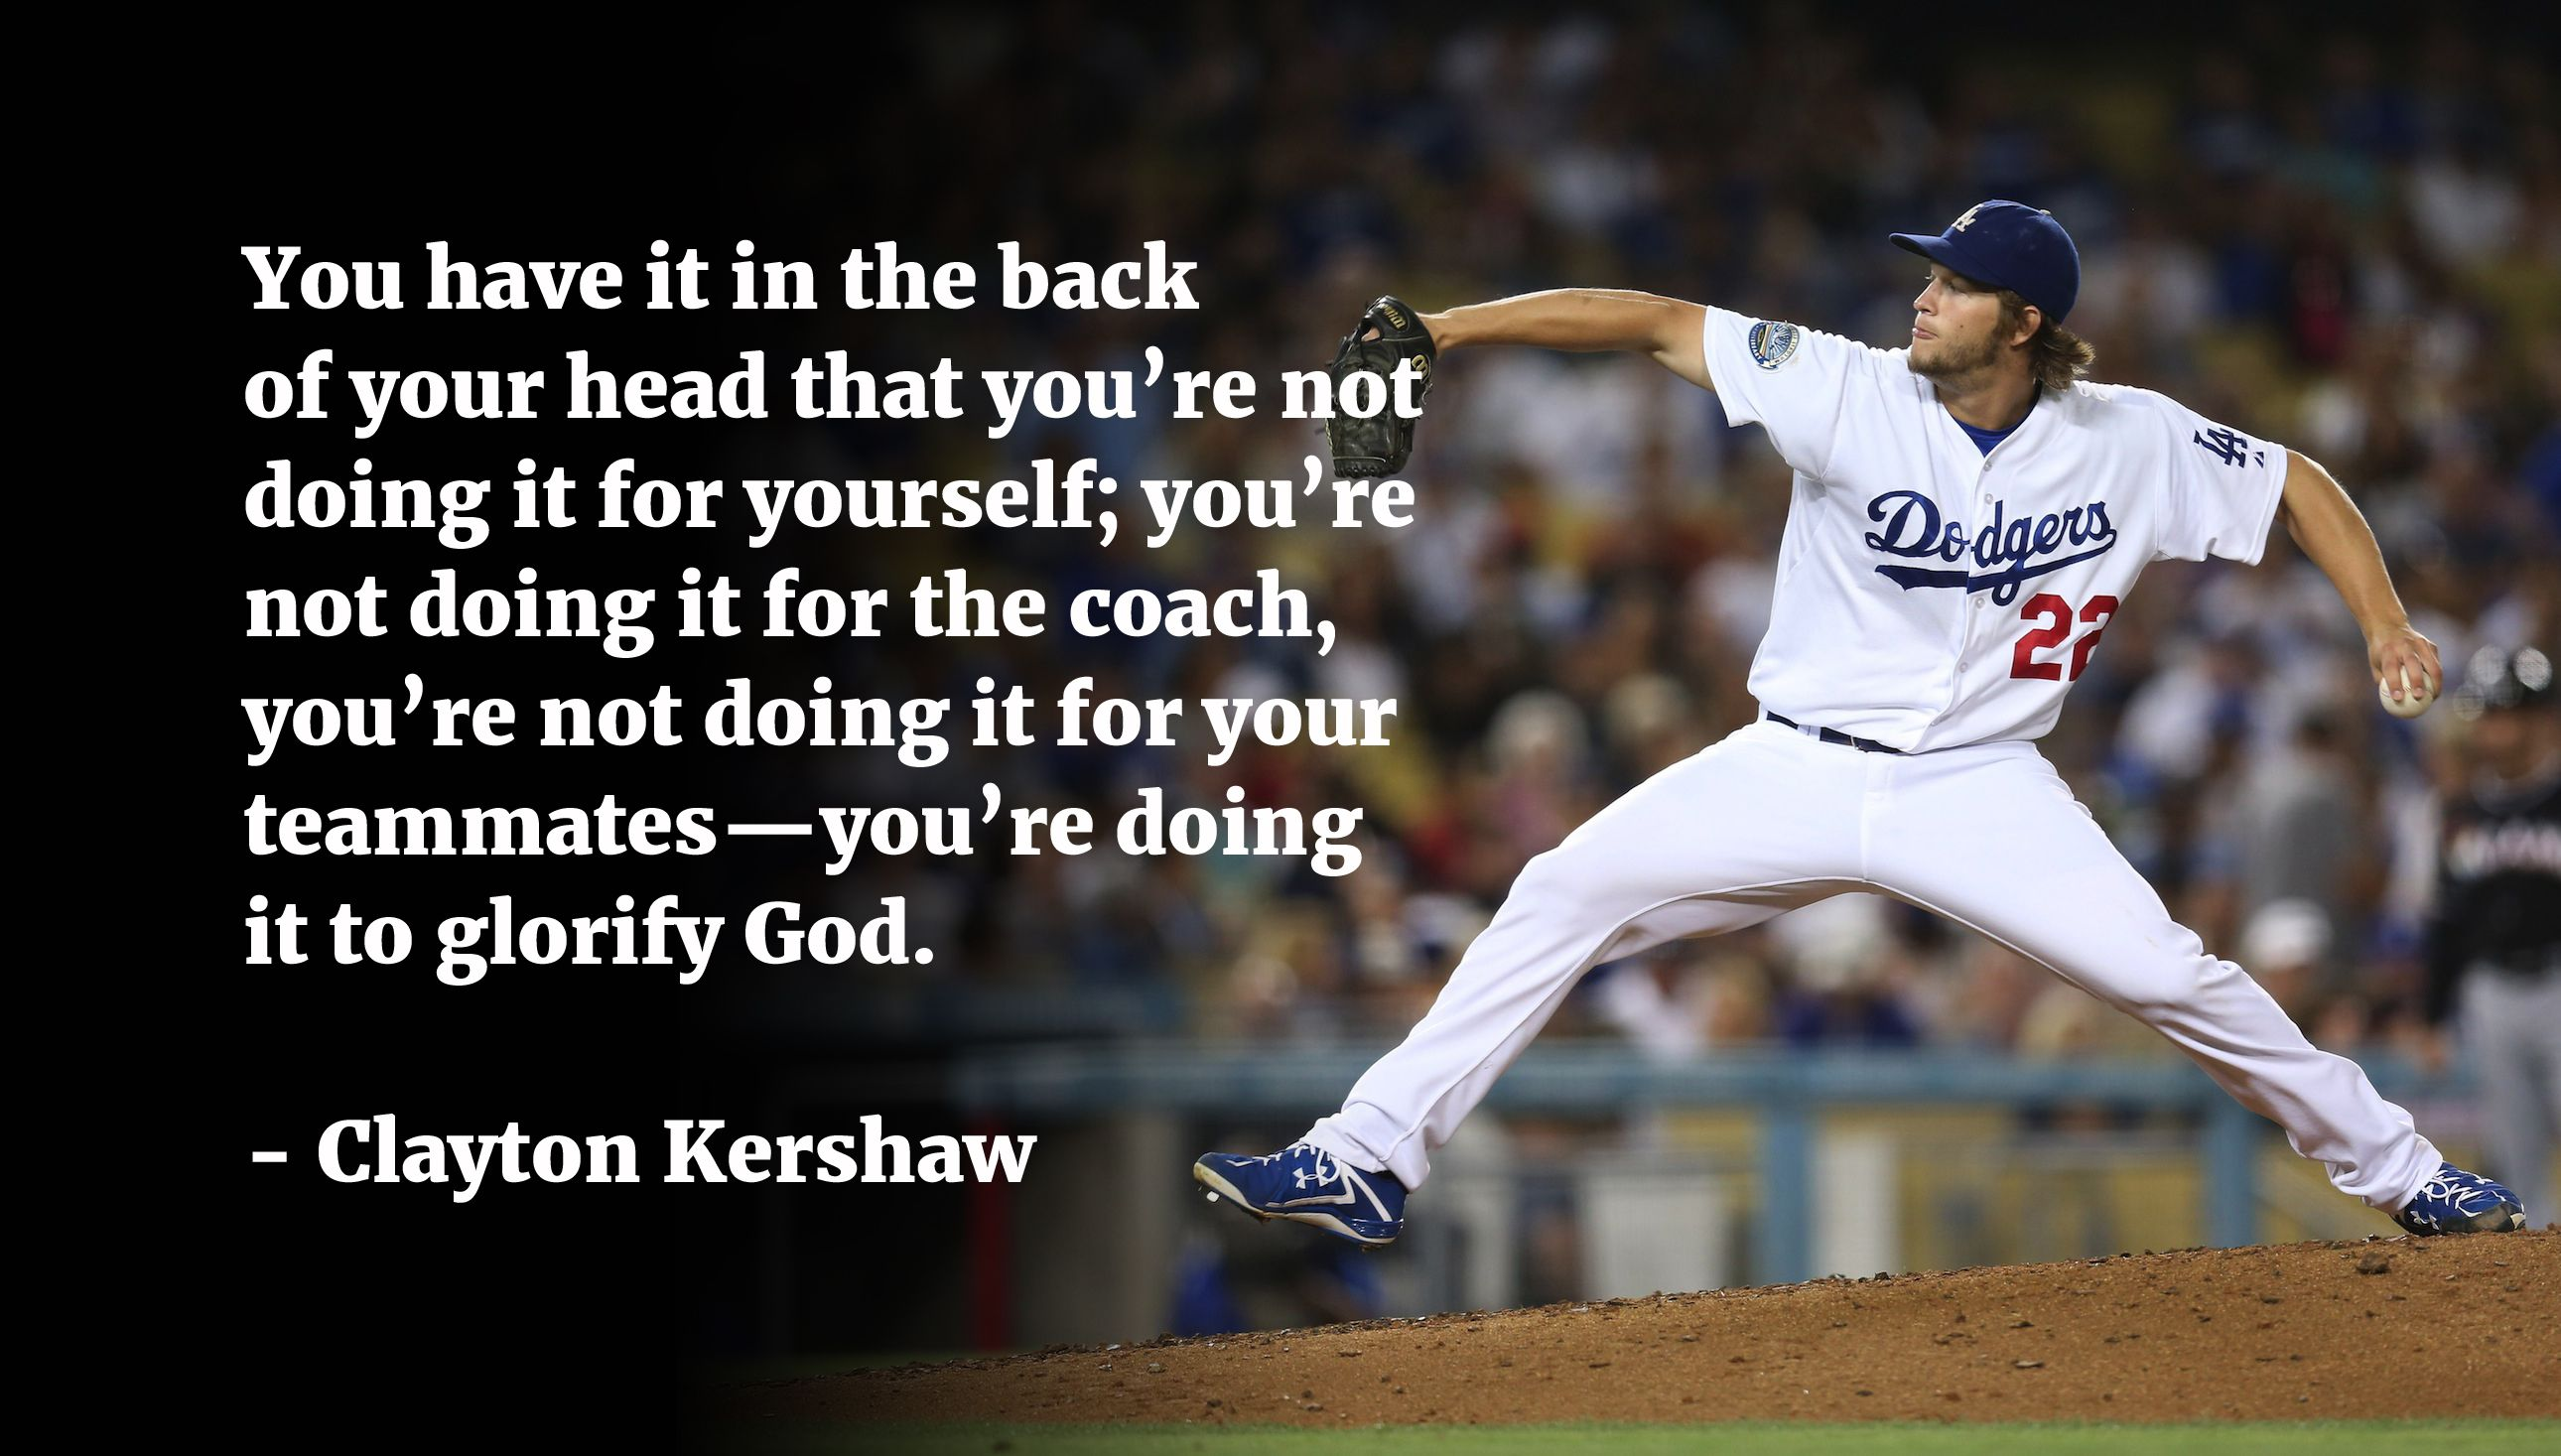 We Ve Highlighted 8 Mlb Players And Their Most Inspiring Quotes About Living For God In The Spotlight Of Los Angeles Dodgers Baseball Dodgers Baseball Baseball